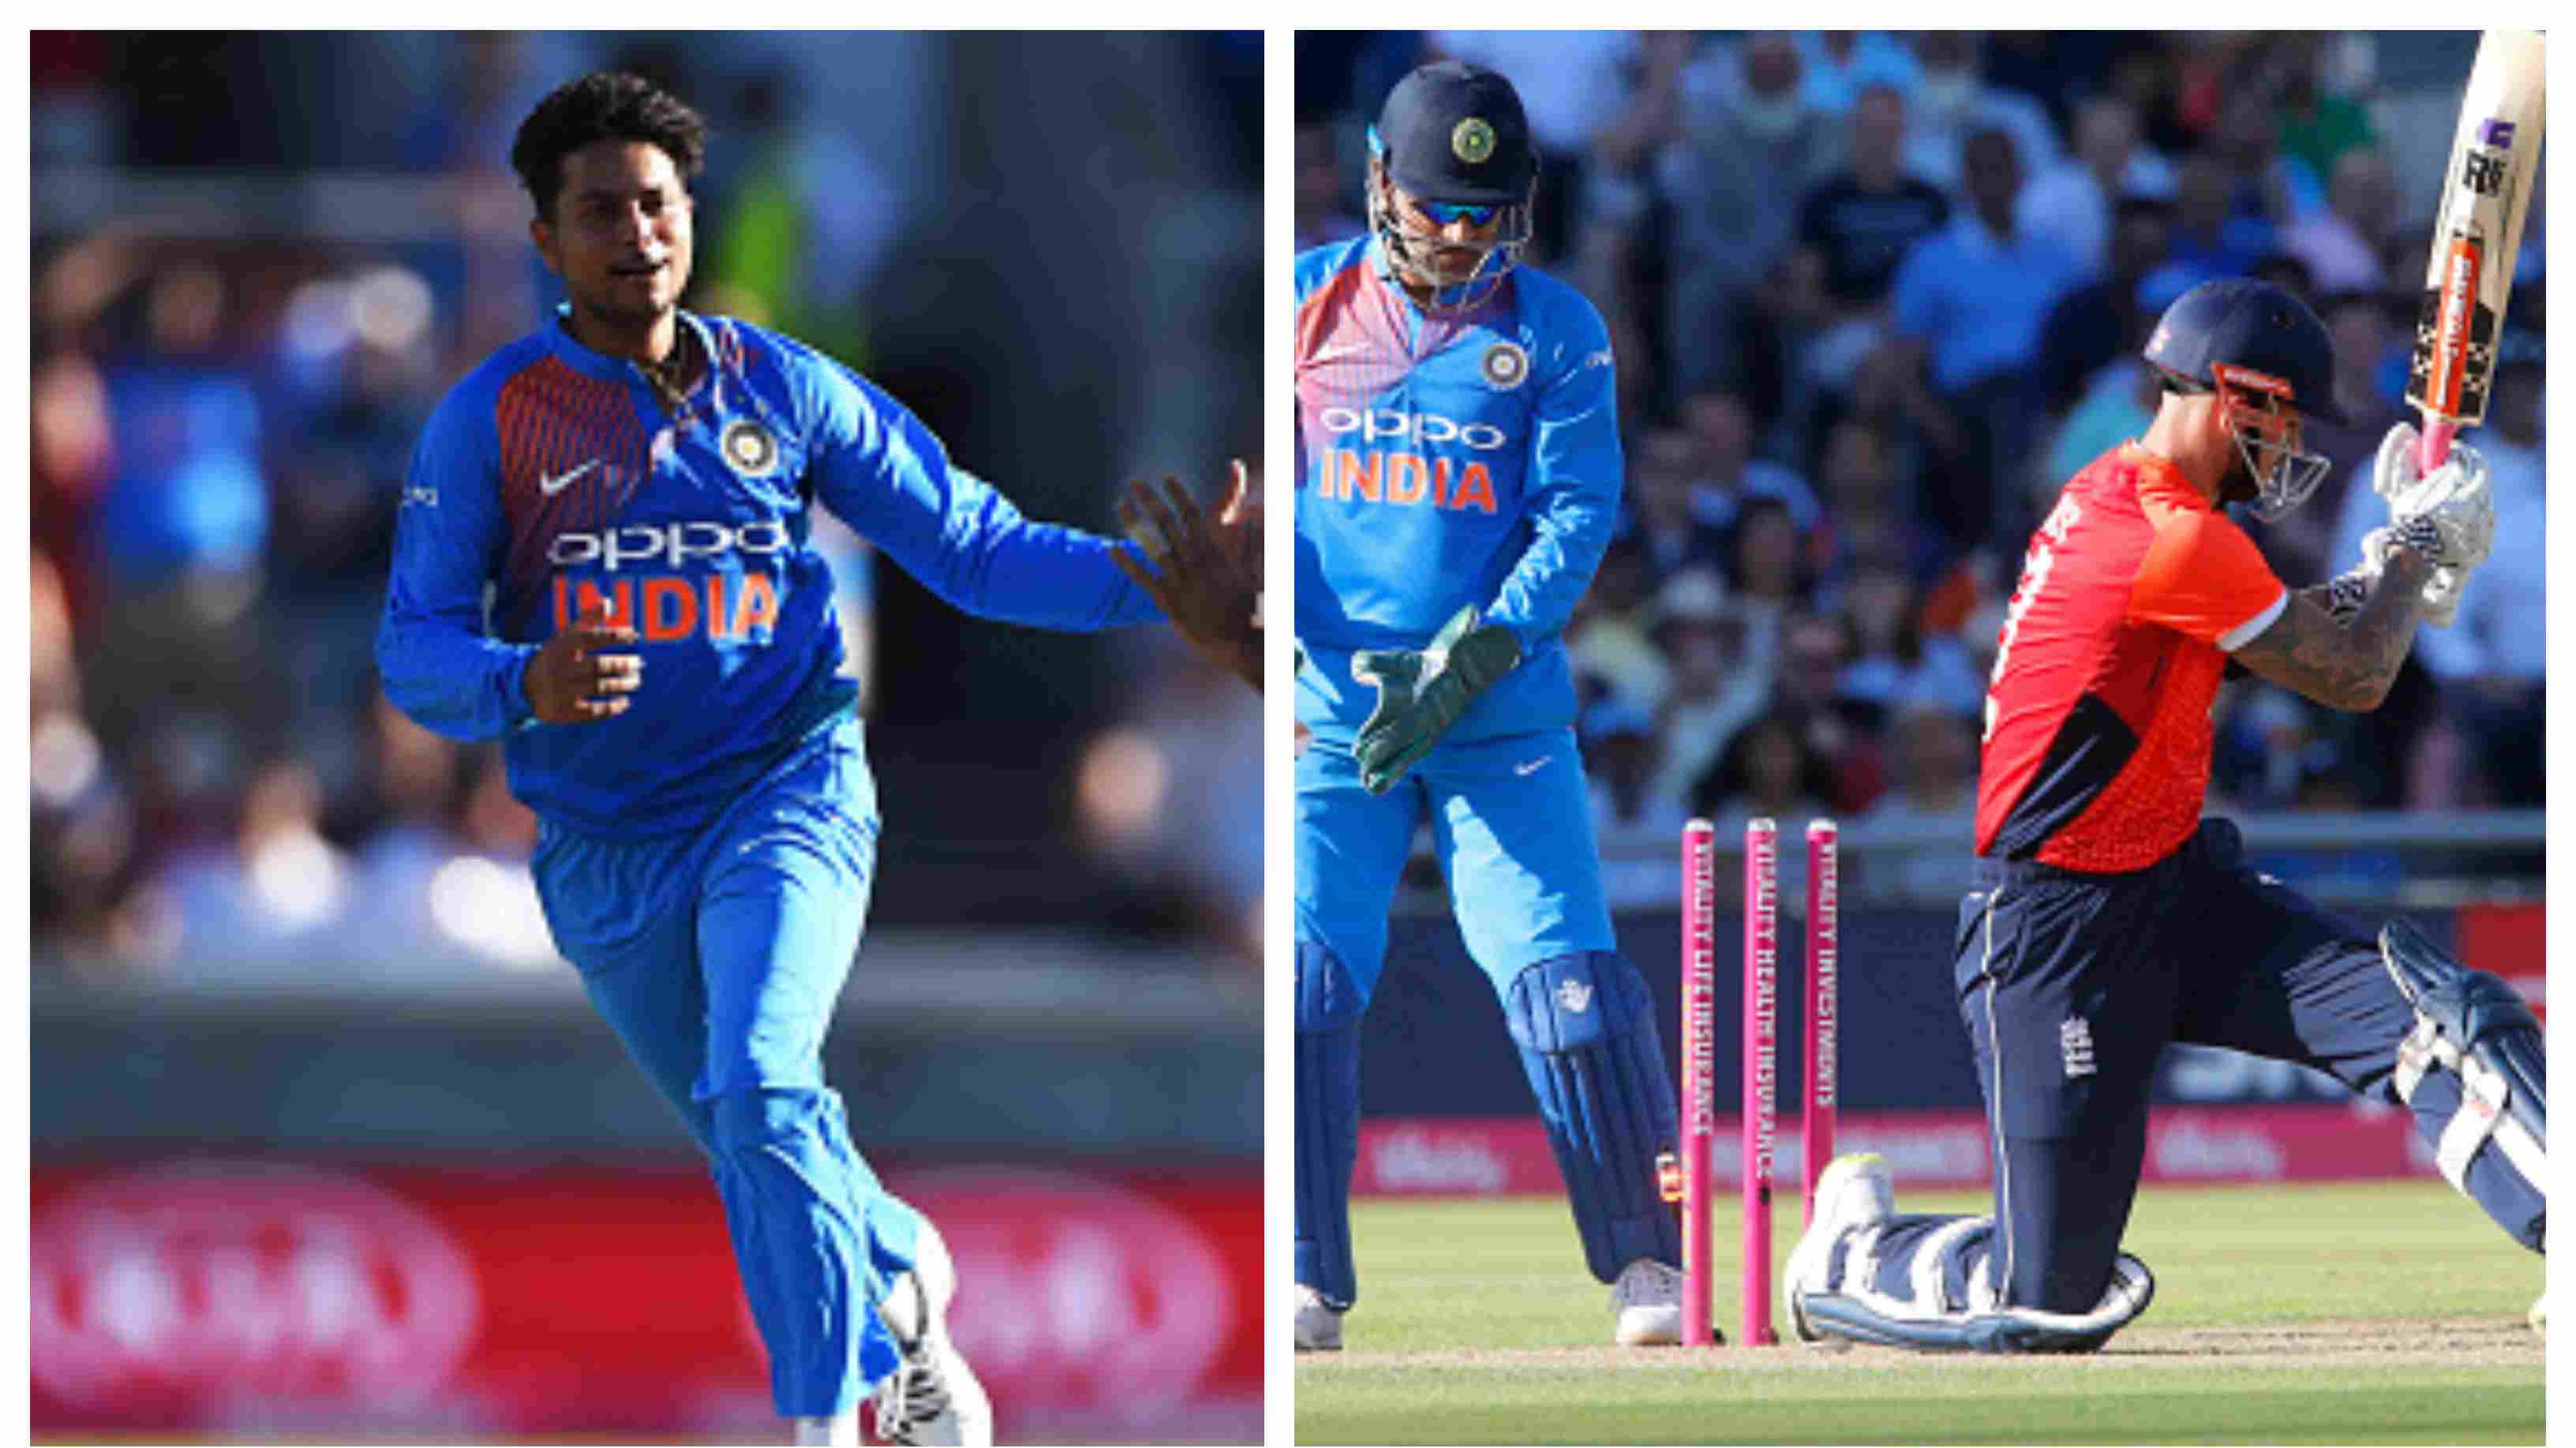 ENG v IND 2018: England to exploit Merlyn spin-bowling machine to combat Kuldeep Yadav